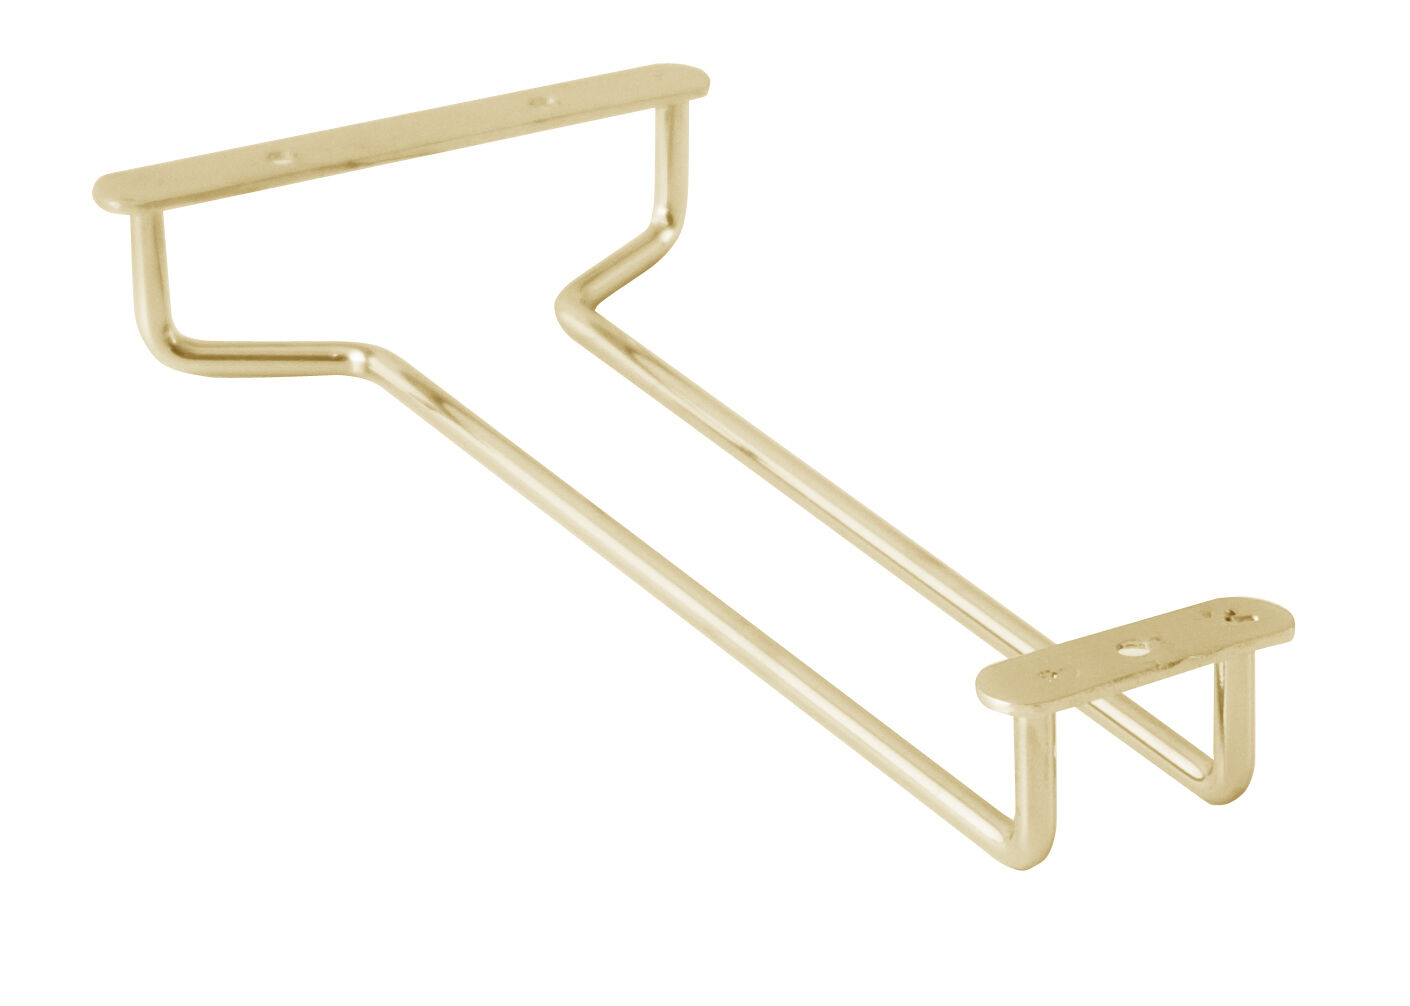 Ikea Drehstuhl Skruvsta Weiß ~ 10 wine glass hanger holder brass plated under cabinet rack shelf new